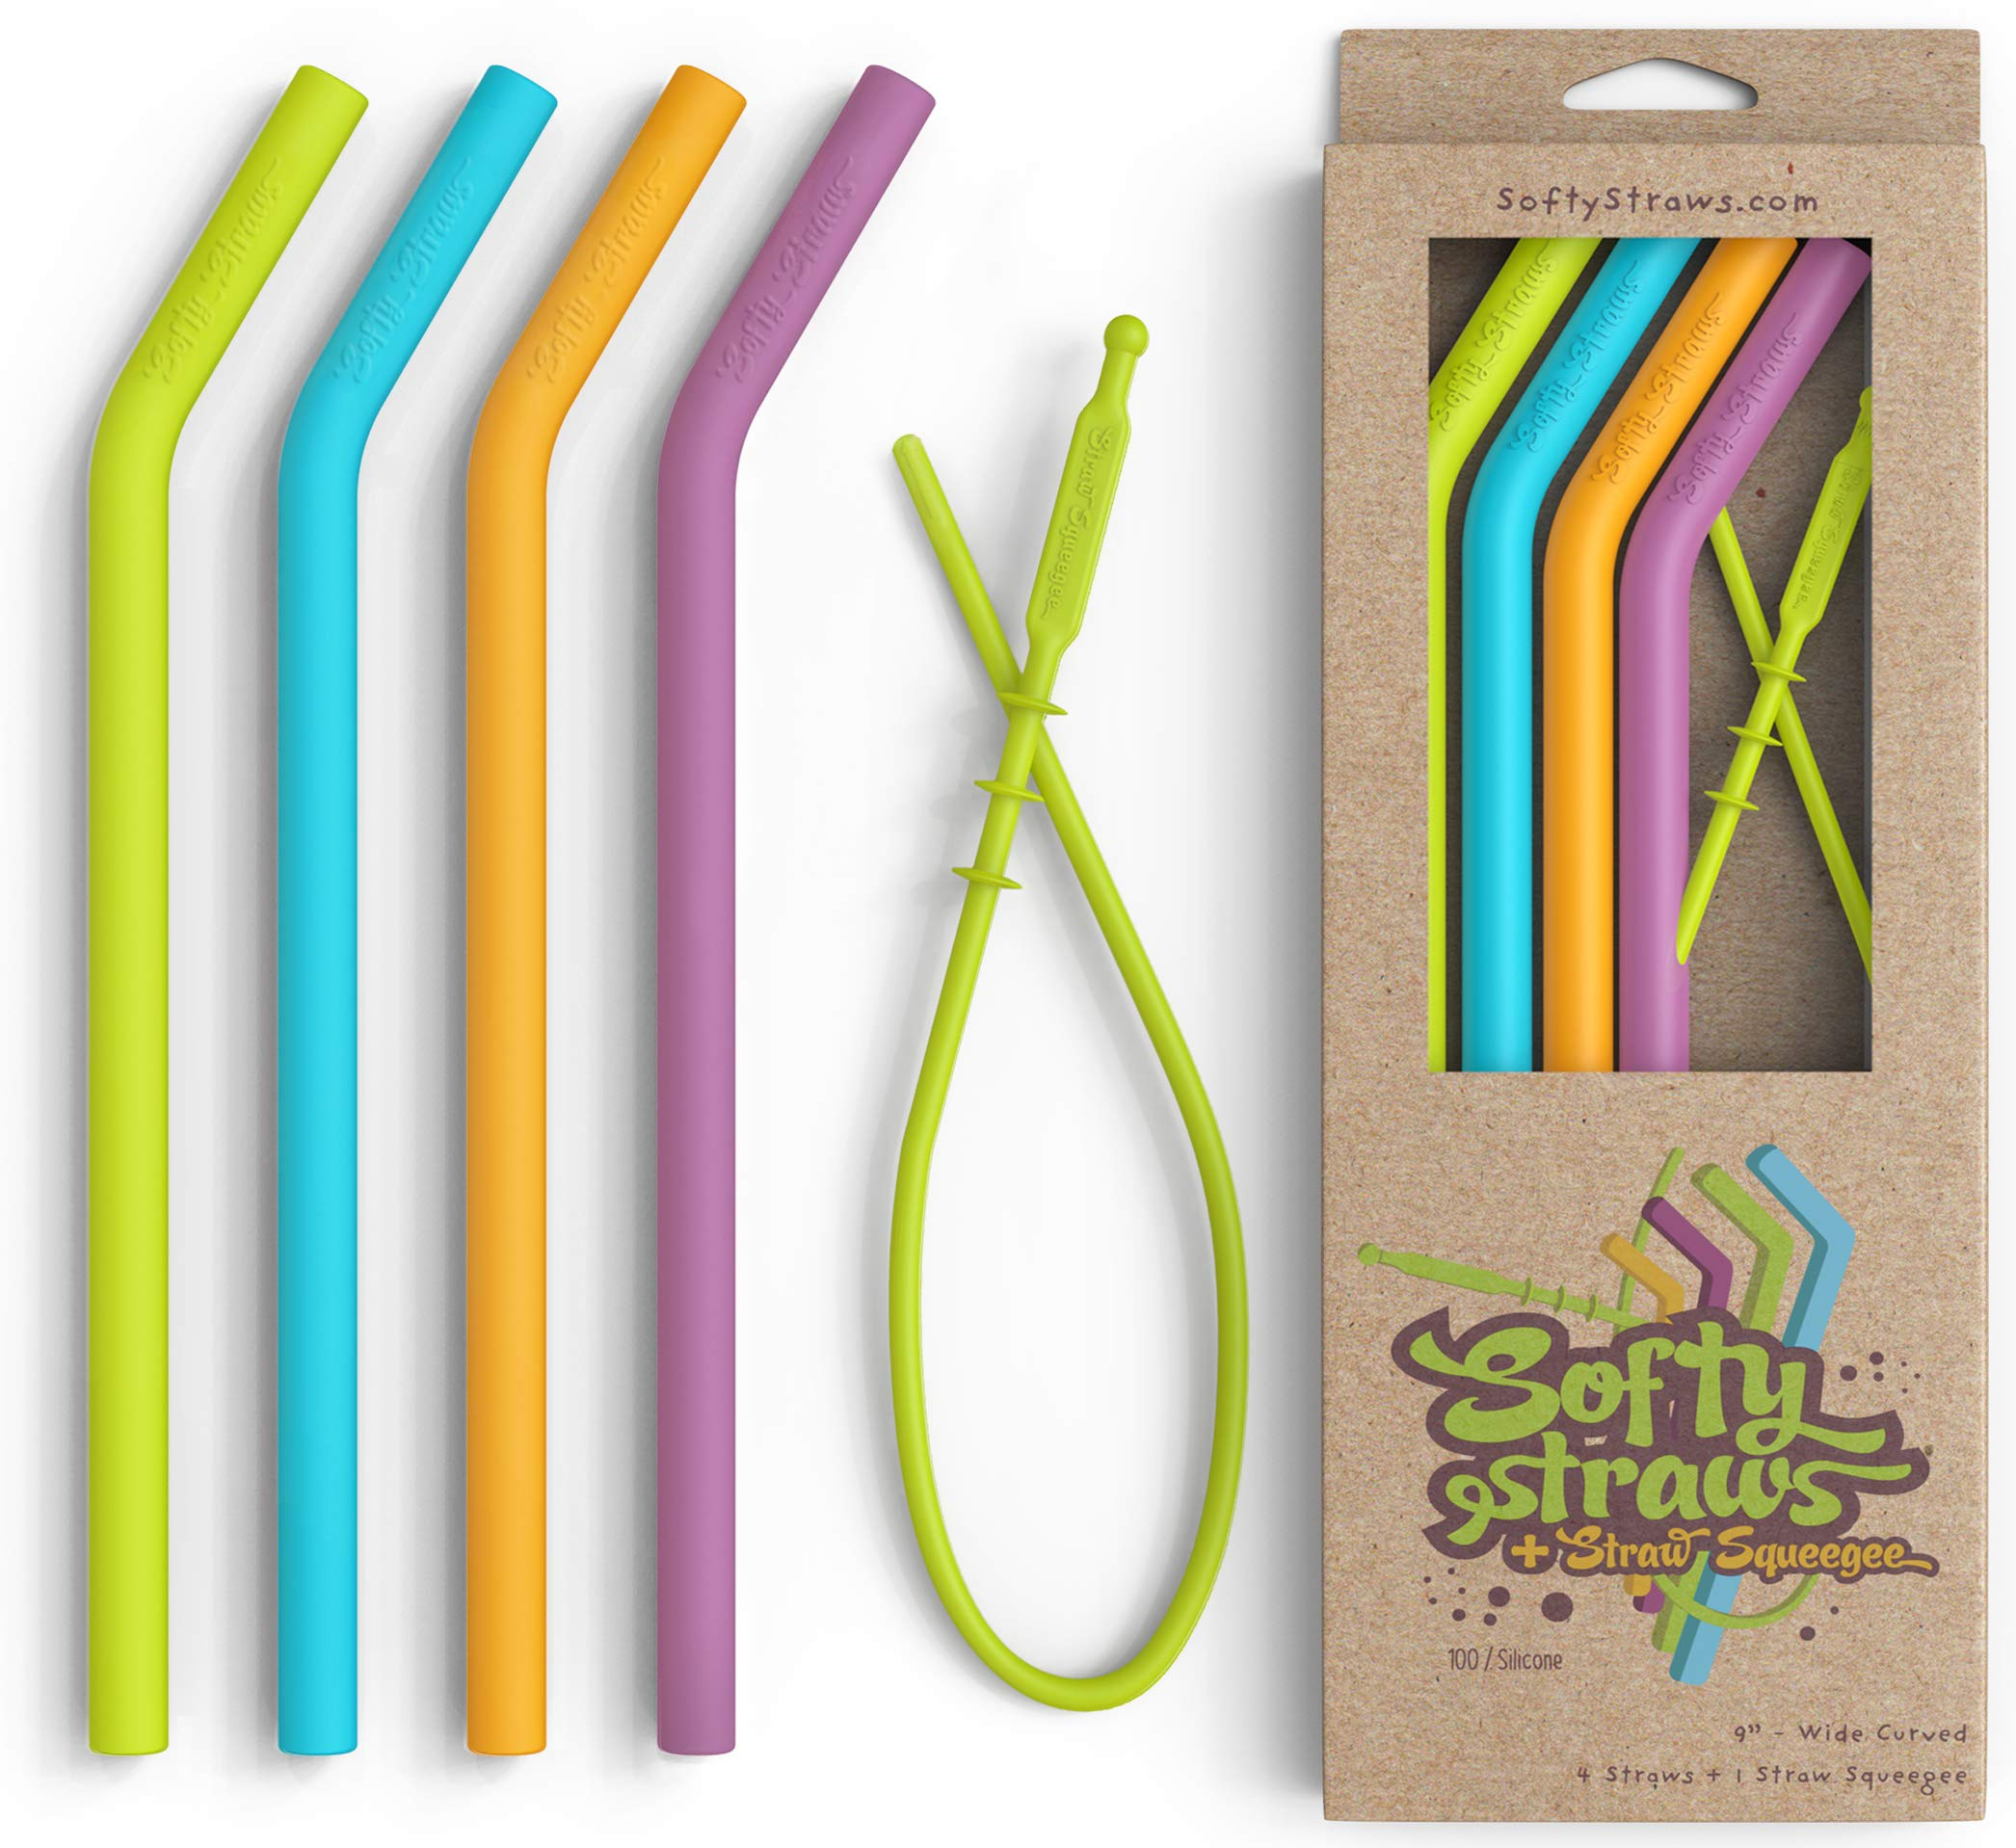 Silicone Straws - Big Size Reusable Drinking Straws with Curved Bend for Tumblers Made from BPA Free No-Rubber Silicon - Flexible, Collapsible, Chewy, Bendy, Safe for Kids/Toddlers by Softy Straws